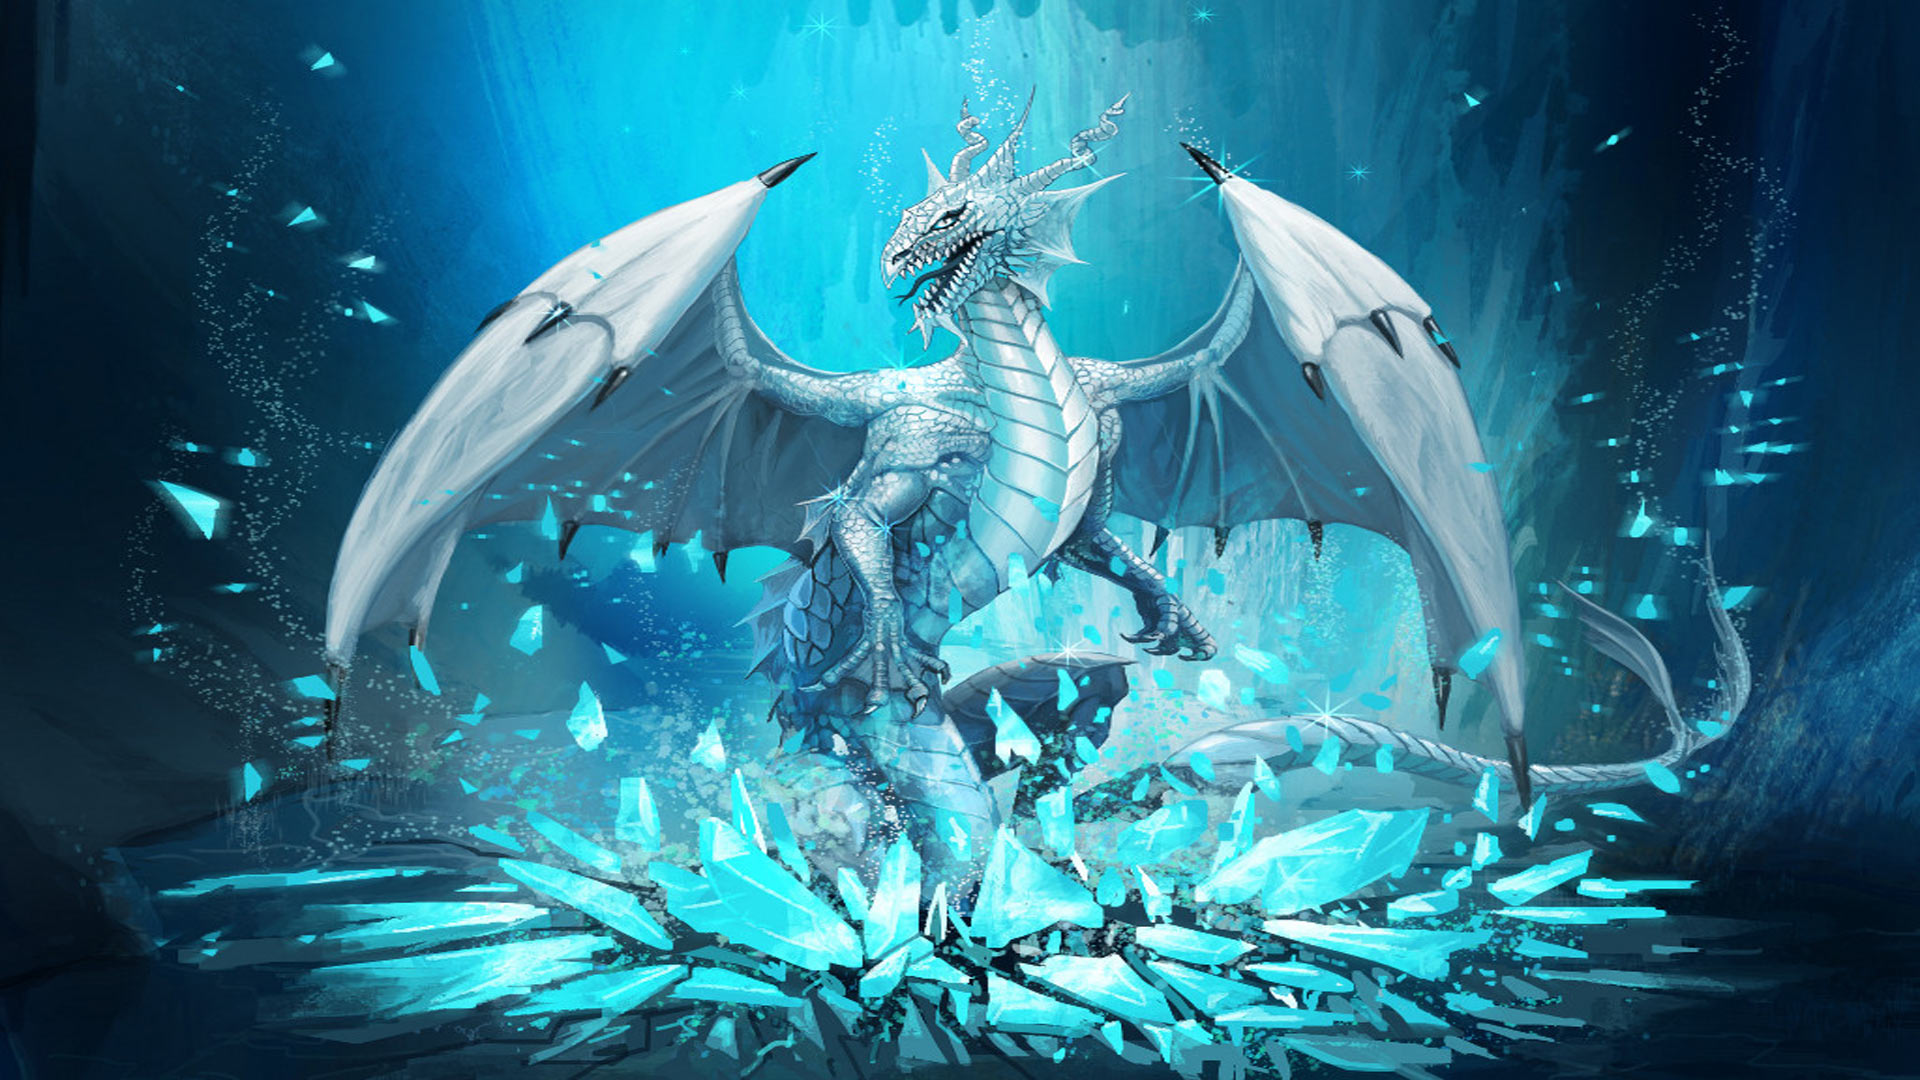 legends of solitaire curse of the dragons ice dragon steam